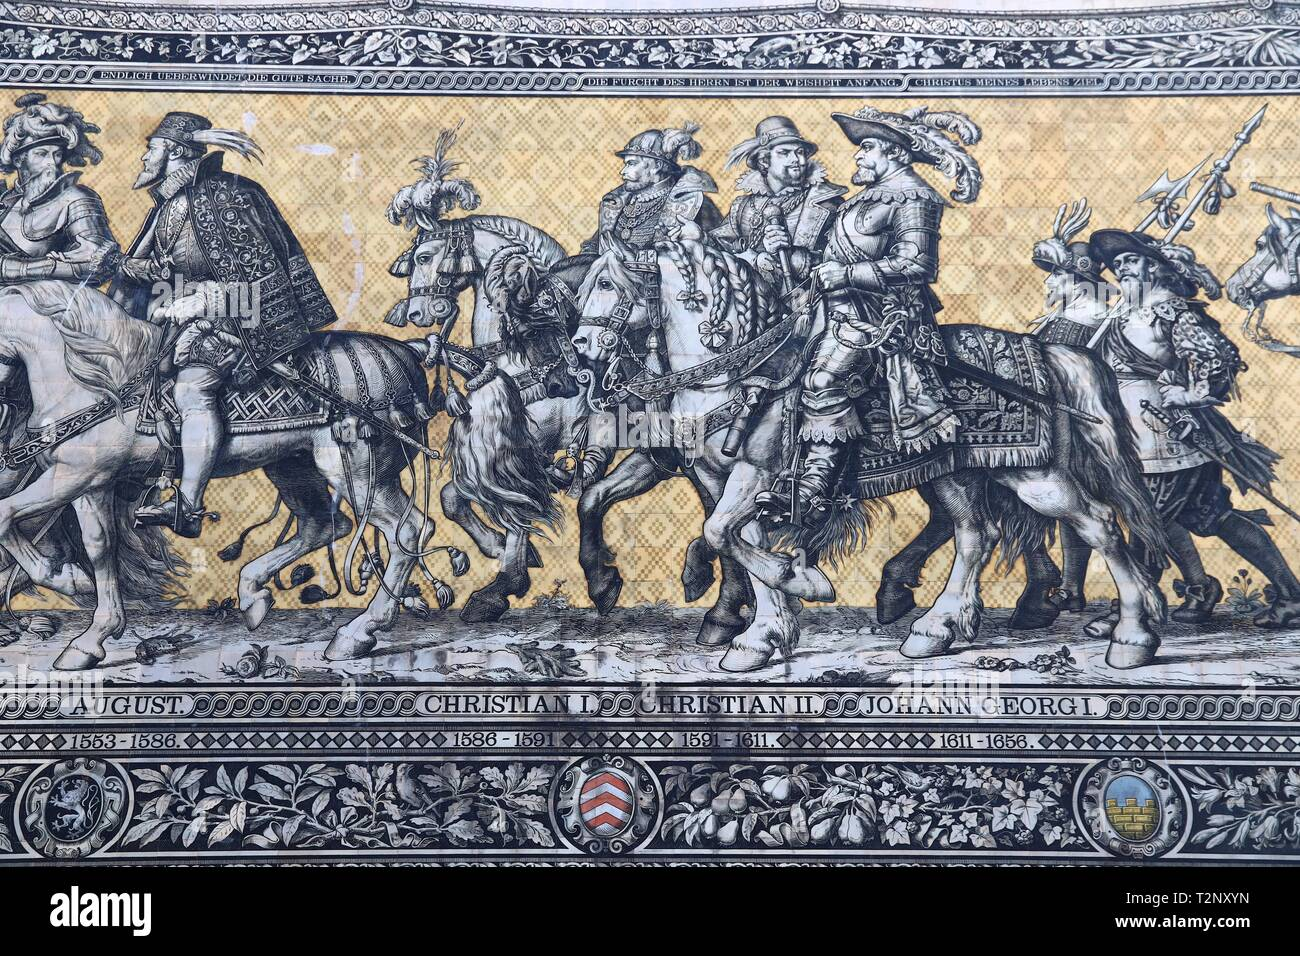 DRESDEN, GERMANY - MAY 10, 2018: Fuerstenzug (Procession of Princes), a mural mosaic of painted Meissen tiles depicting procession of rulers of Saxony - Stock Image